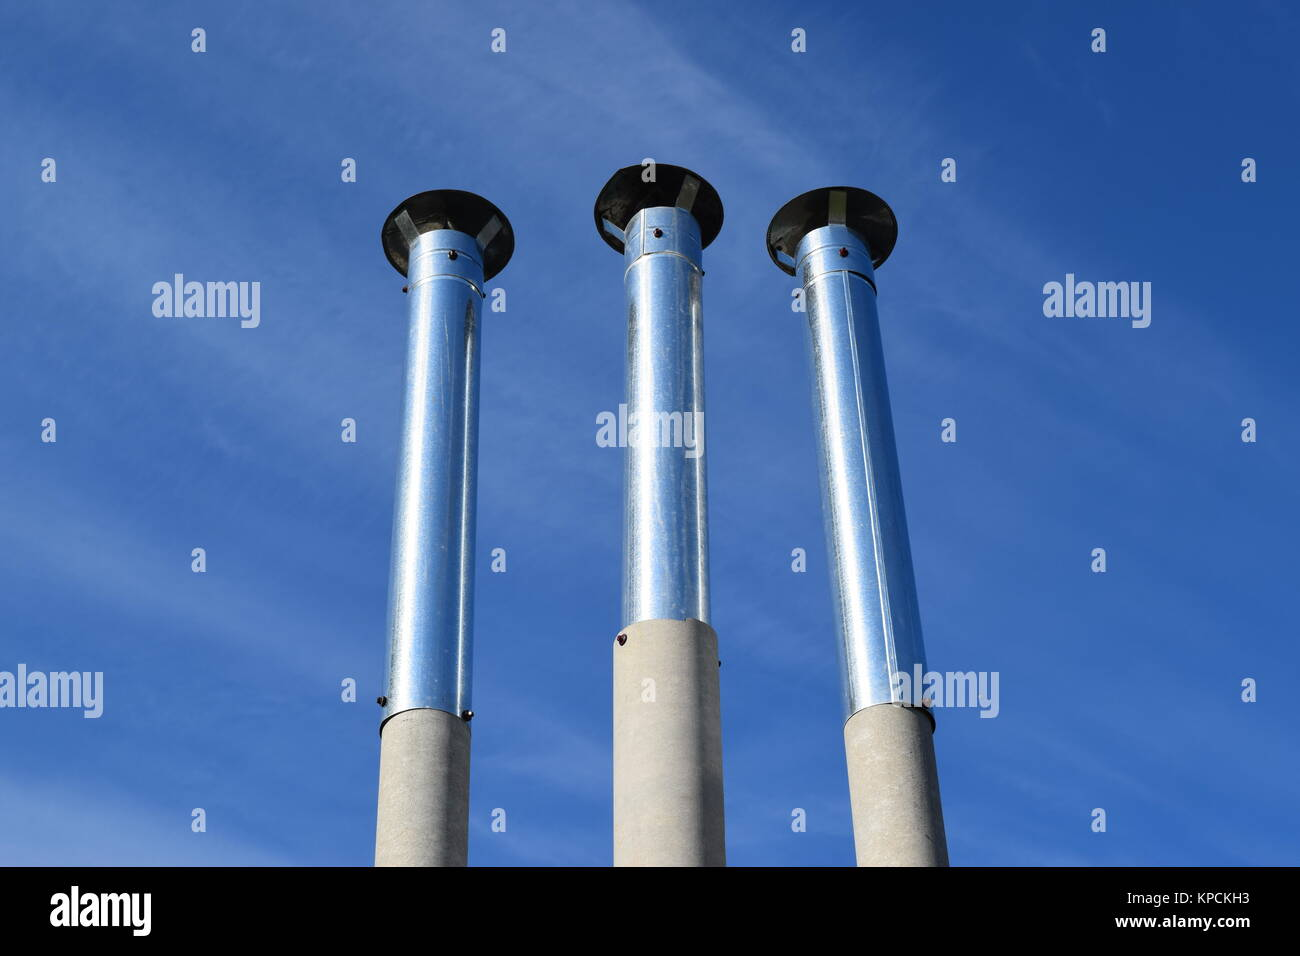 Vent Heating Stock Photos & Vent Heating Stock Images - Alamy